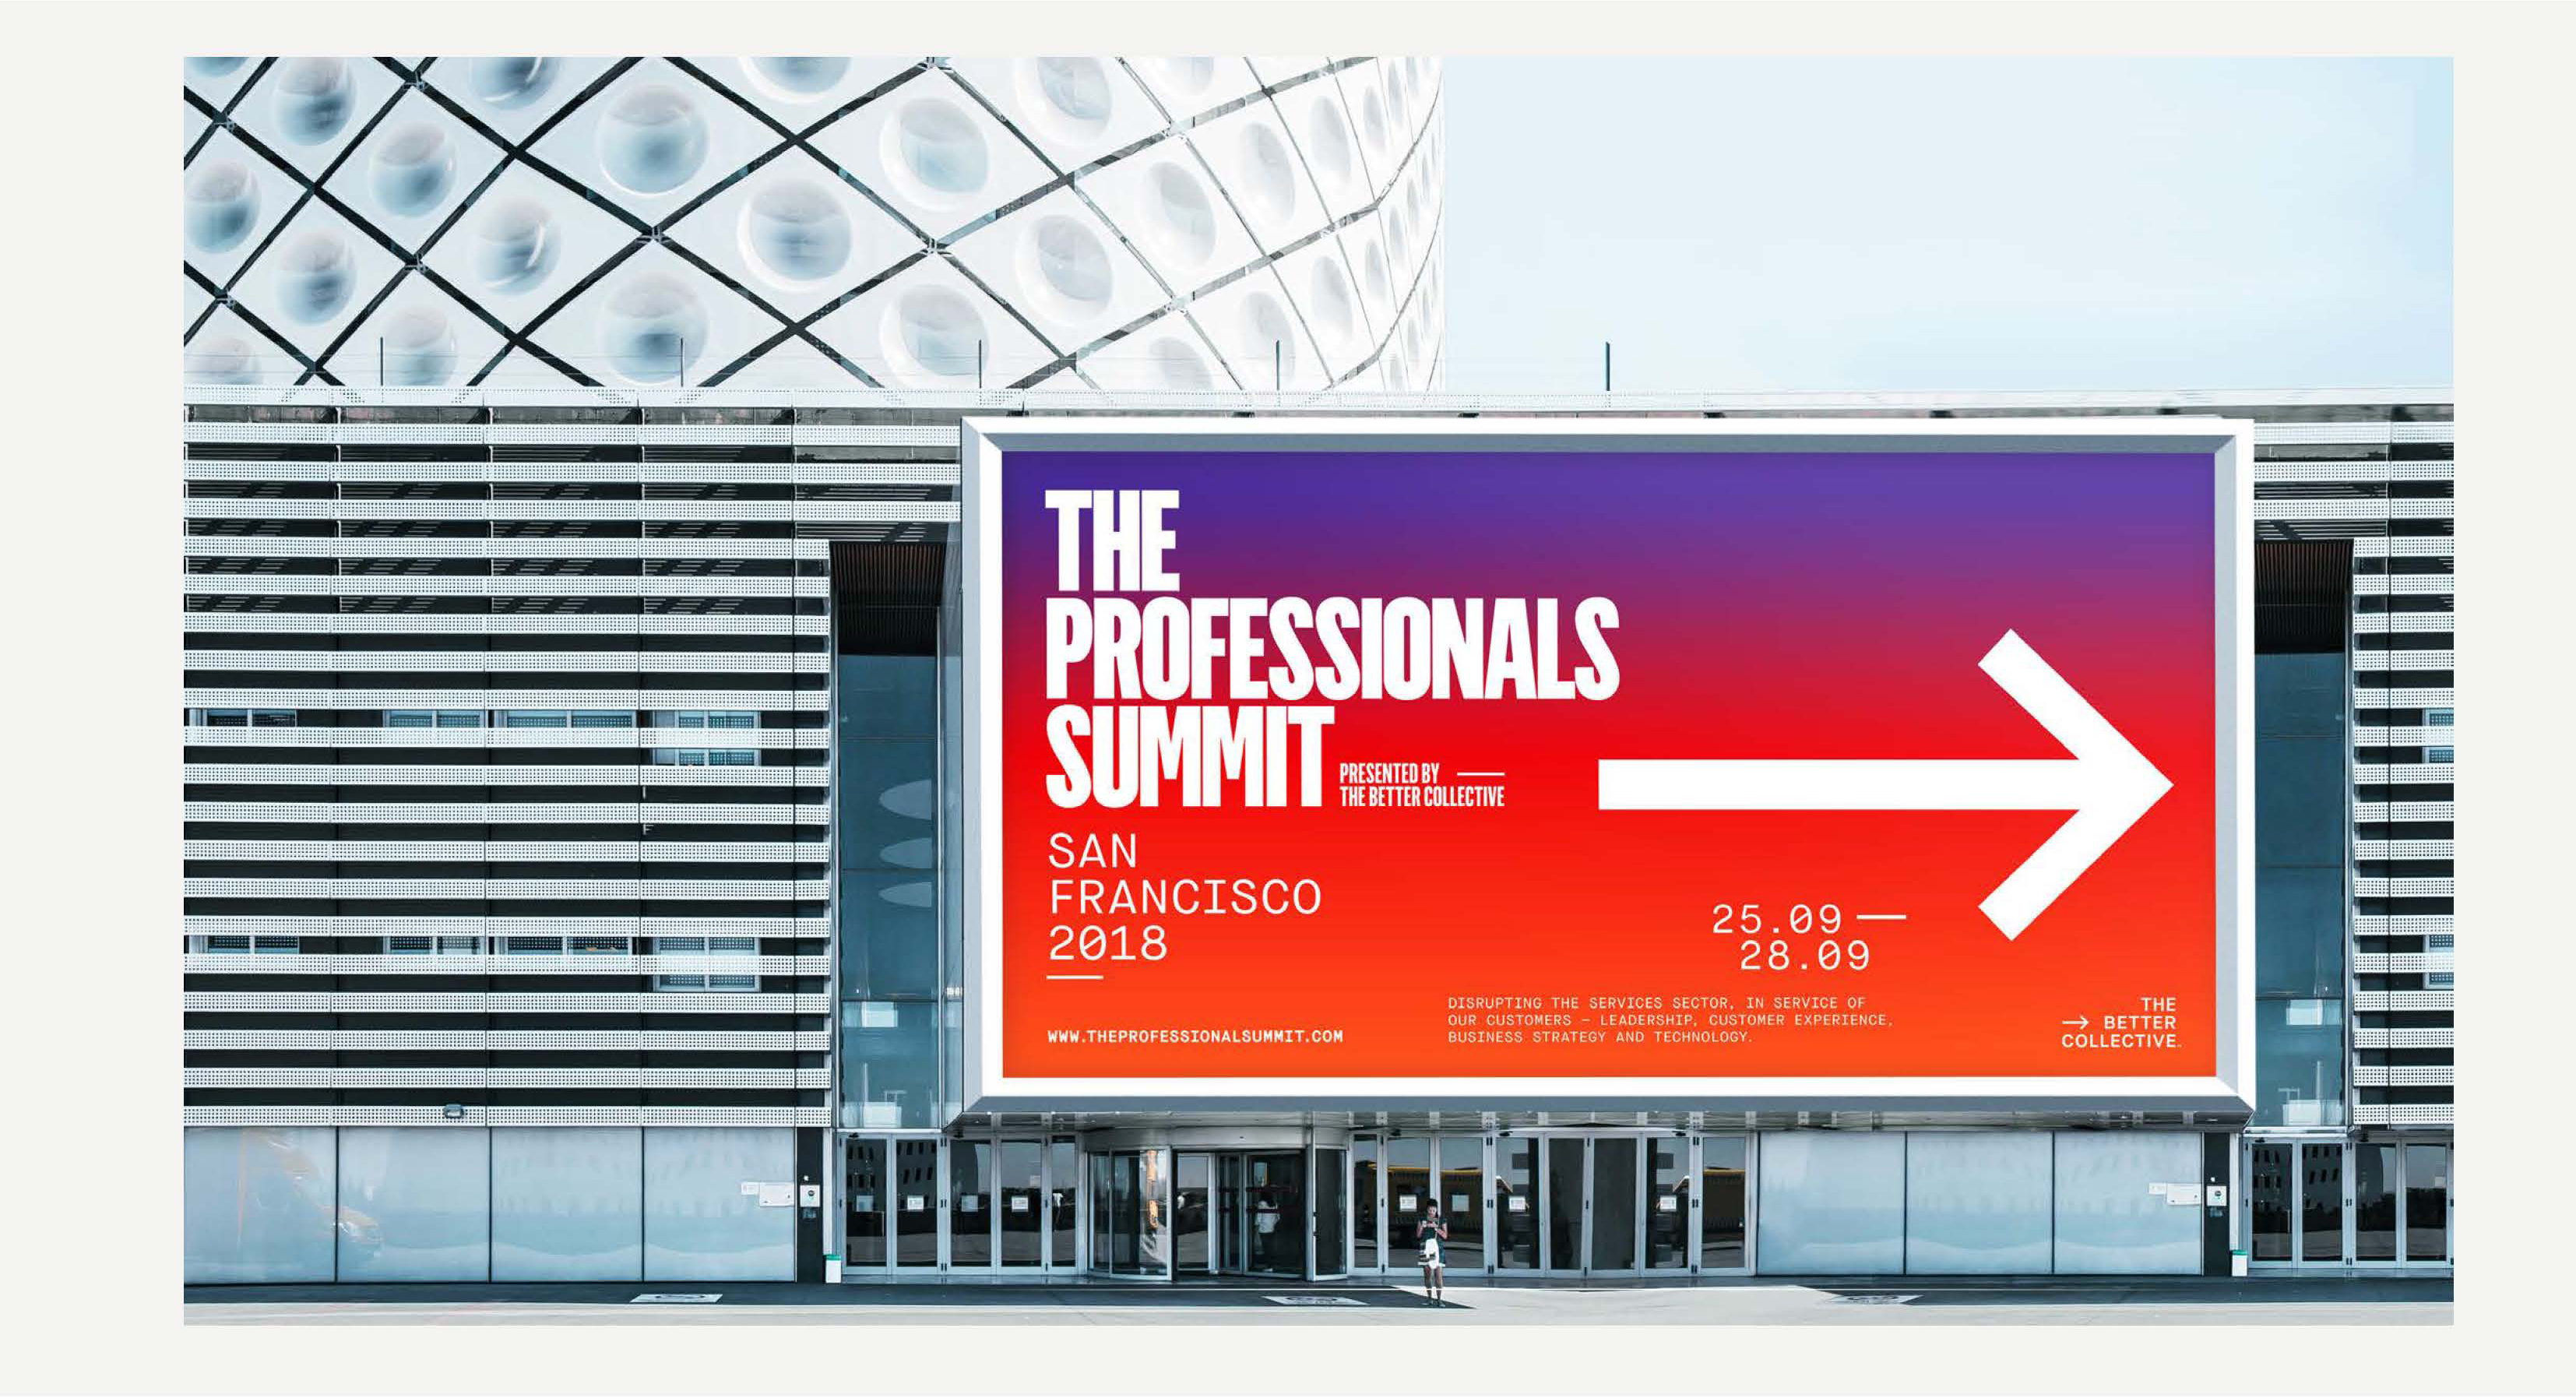 Professionals Summit Conference